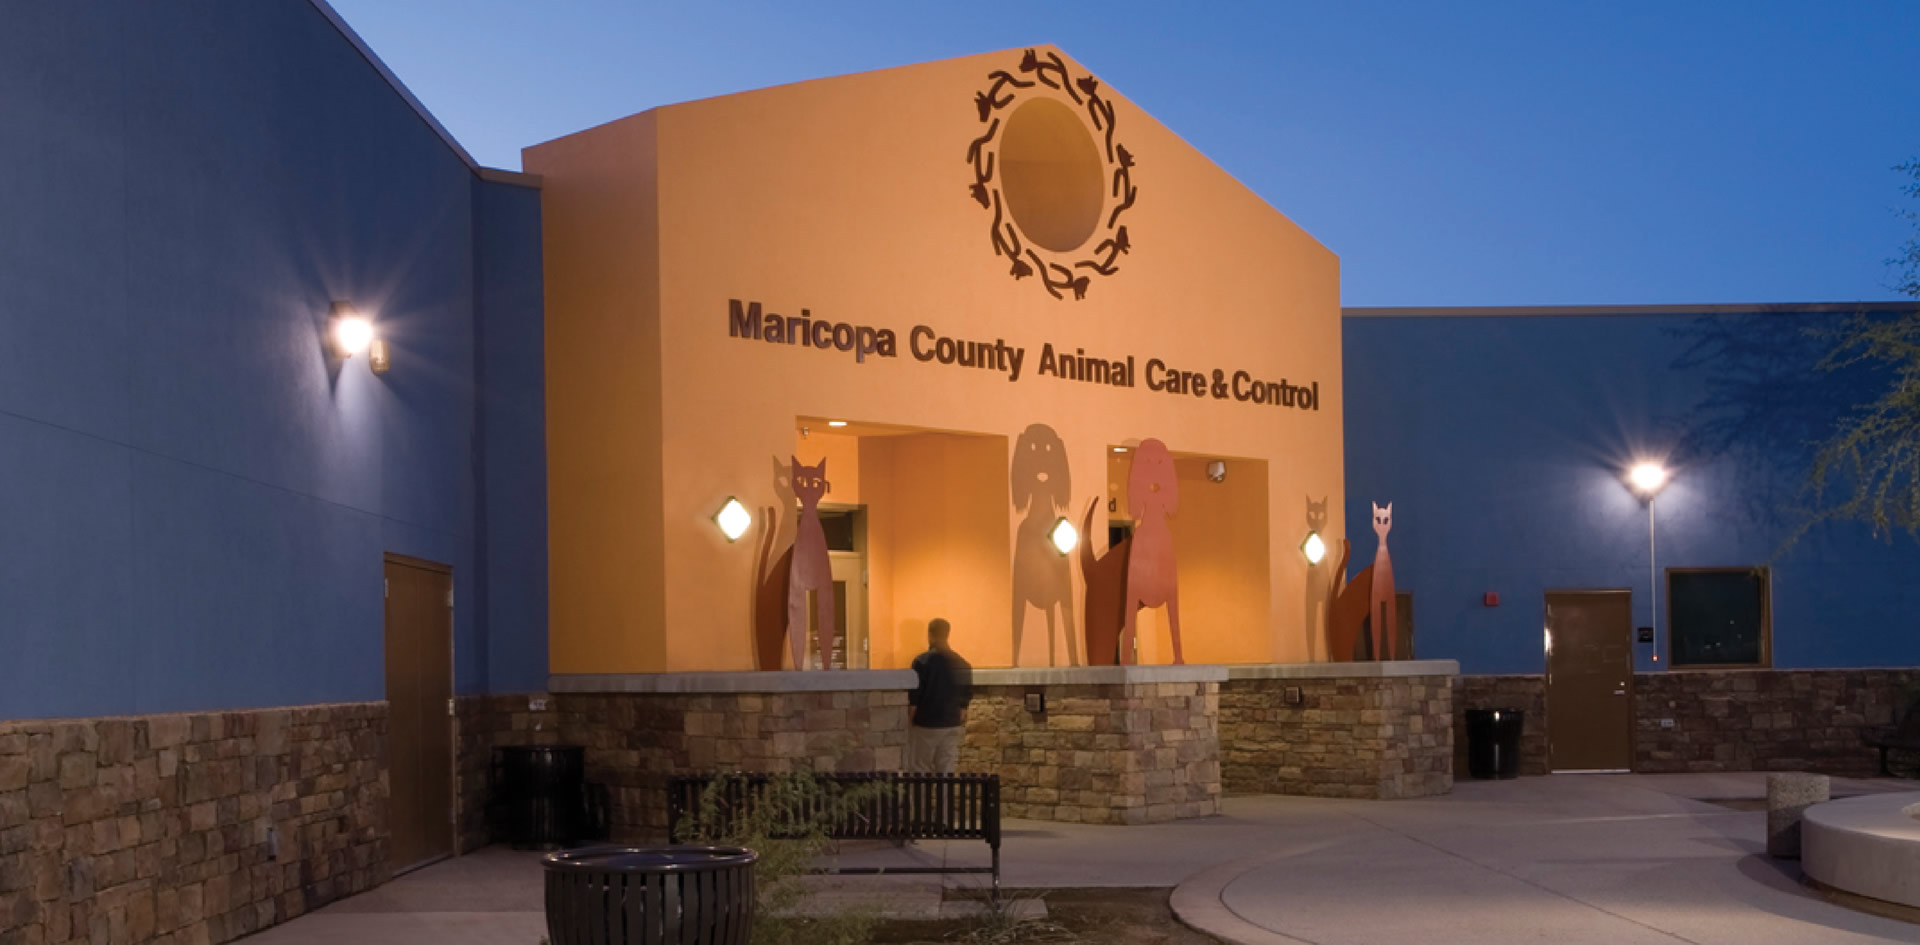 Howling Maricopa County Animal Arizona Jackson Ryan Architects Maricopa County Animal Control Maricopa Animal Care Control Durango Maricopa County Animal Care Control Phoenix Az bark post Maricopa Animal Care And Control